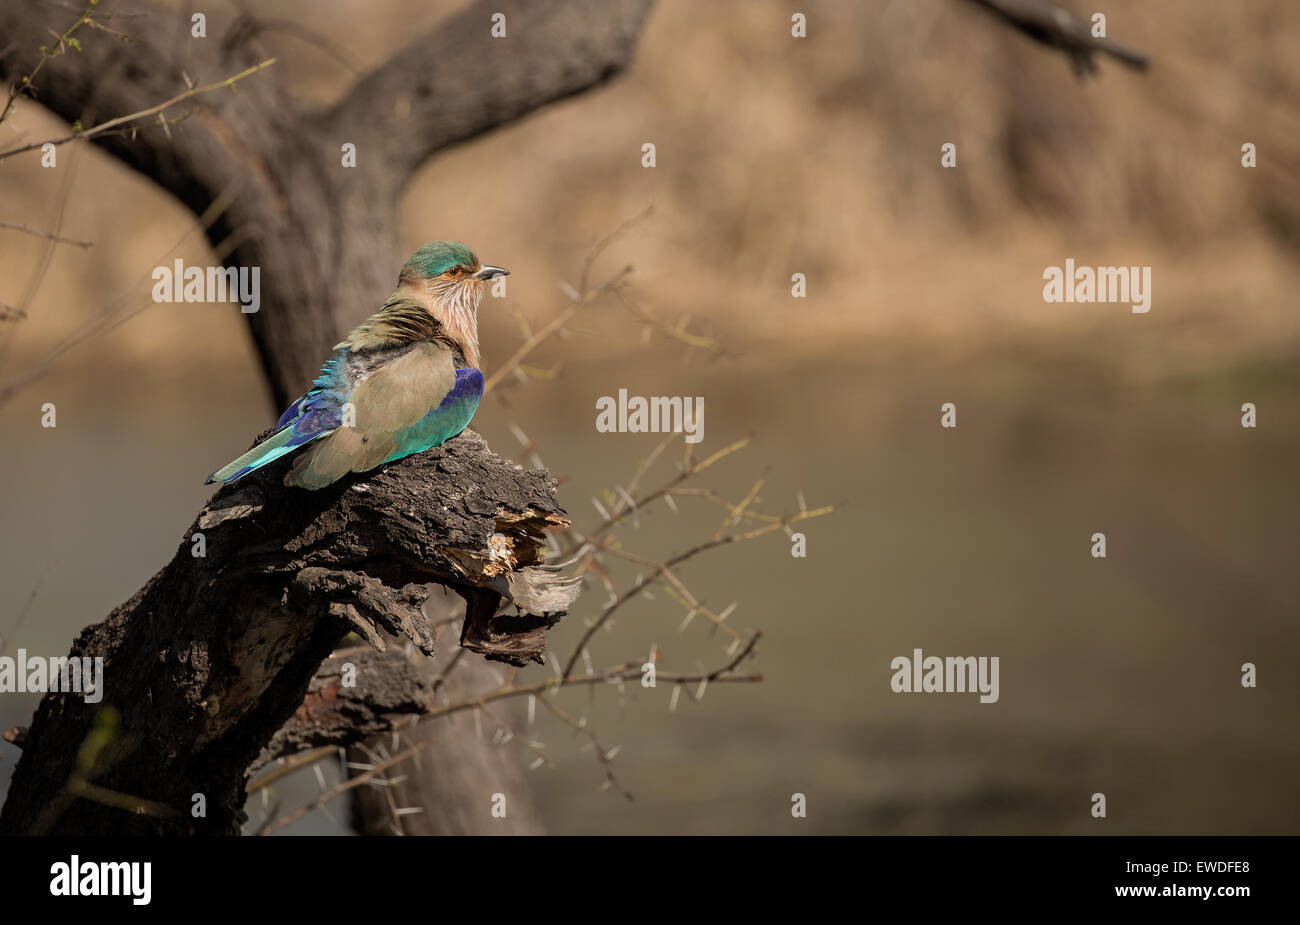 Indian Roller - Stock Image